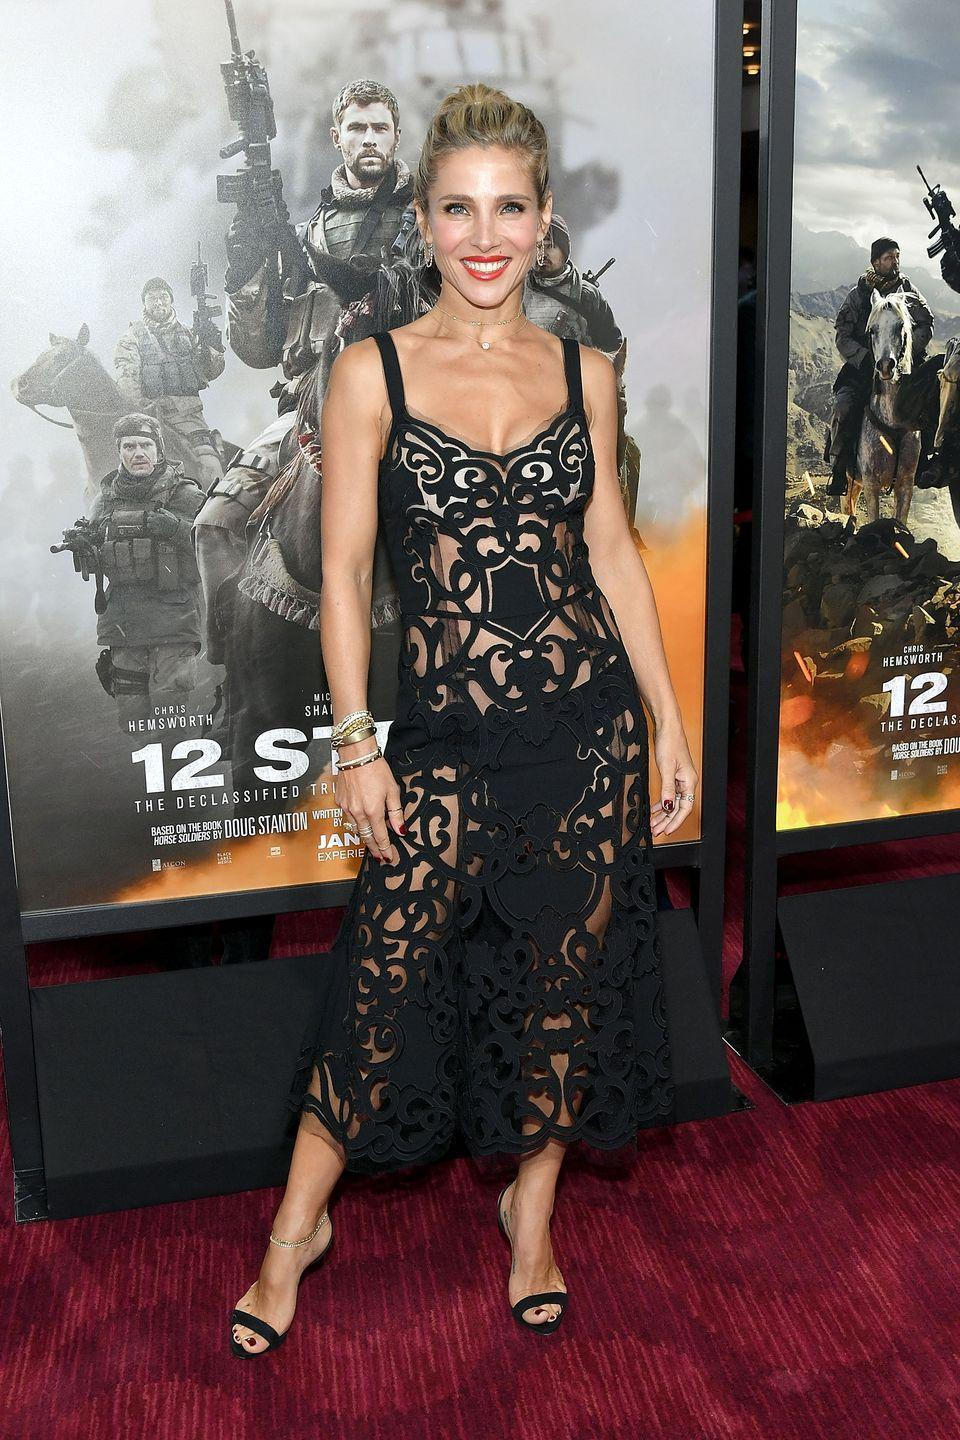 "<p>The Spanish actress and producer loves to work out. In fact, she says she can't go two weeks without exercising. ""I just get really nervous and my energy starts to go down,"" she told <em><a href=""https://www.womenshealthmag.com/uk/fitness/strength-training/a26084676/elsa-pataky/"" rel=""nofollow noopener"" target=""_blank"" data-ylk=""slk:Women's Health"" class=""link rapid-noclick-resp"">Women's Health</a></em>. ""When you start working out and your body's changing and achieving your goals that's such a great thing."" </p>"